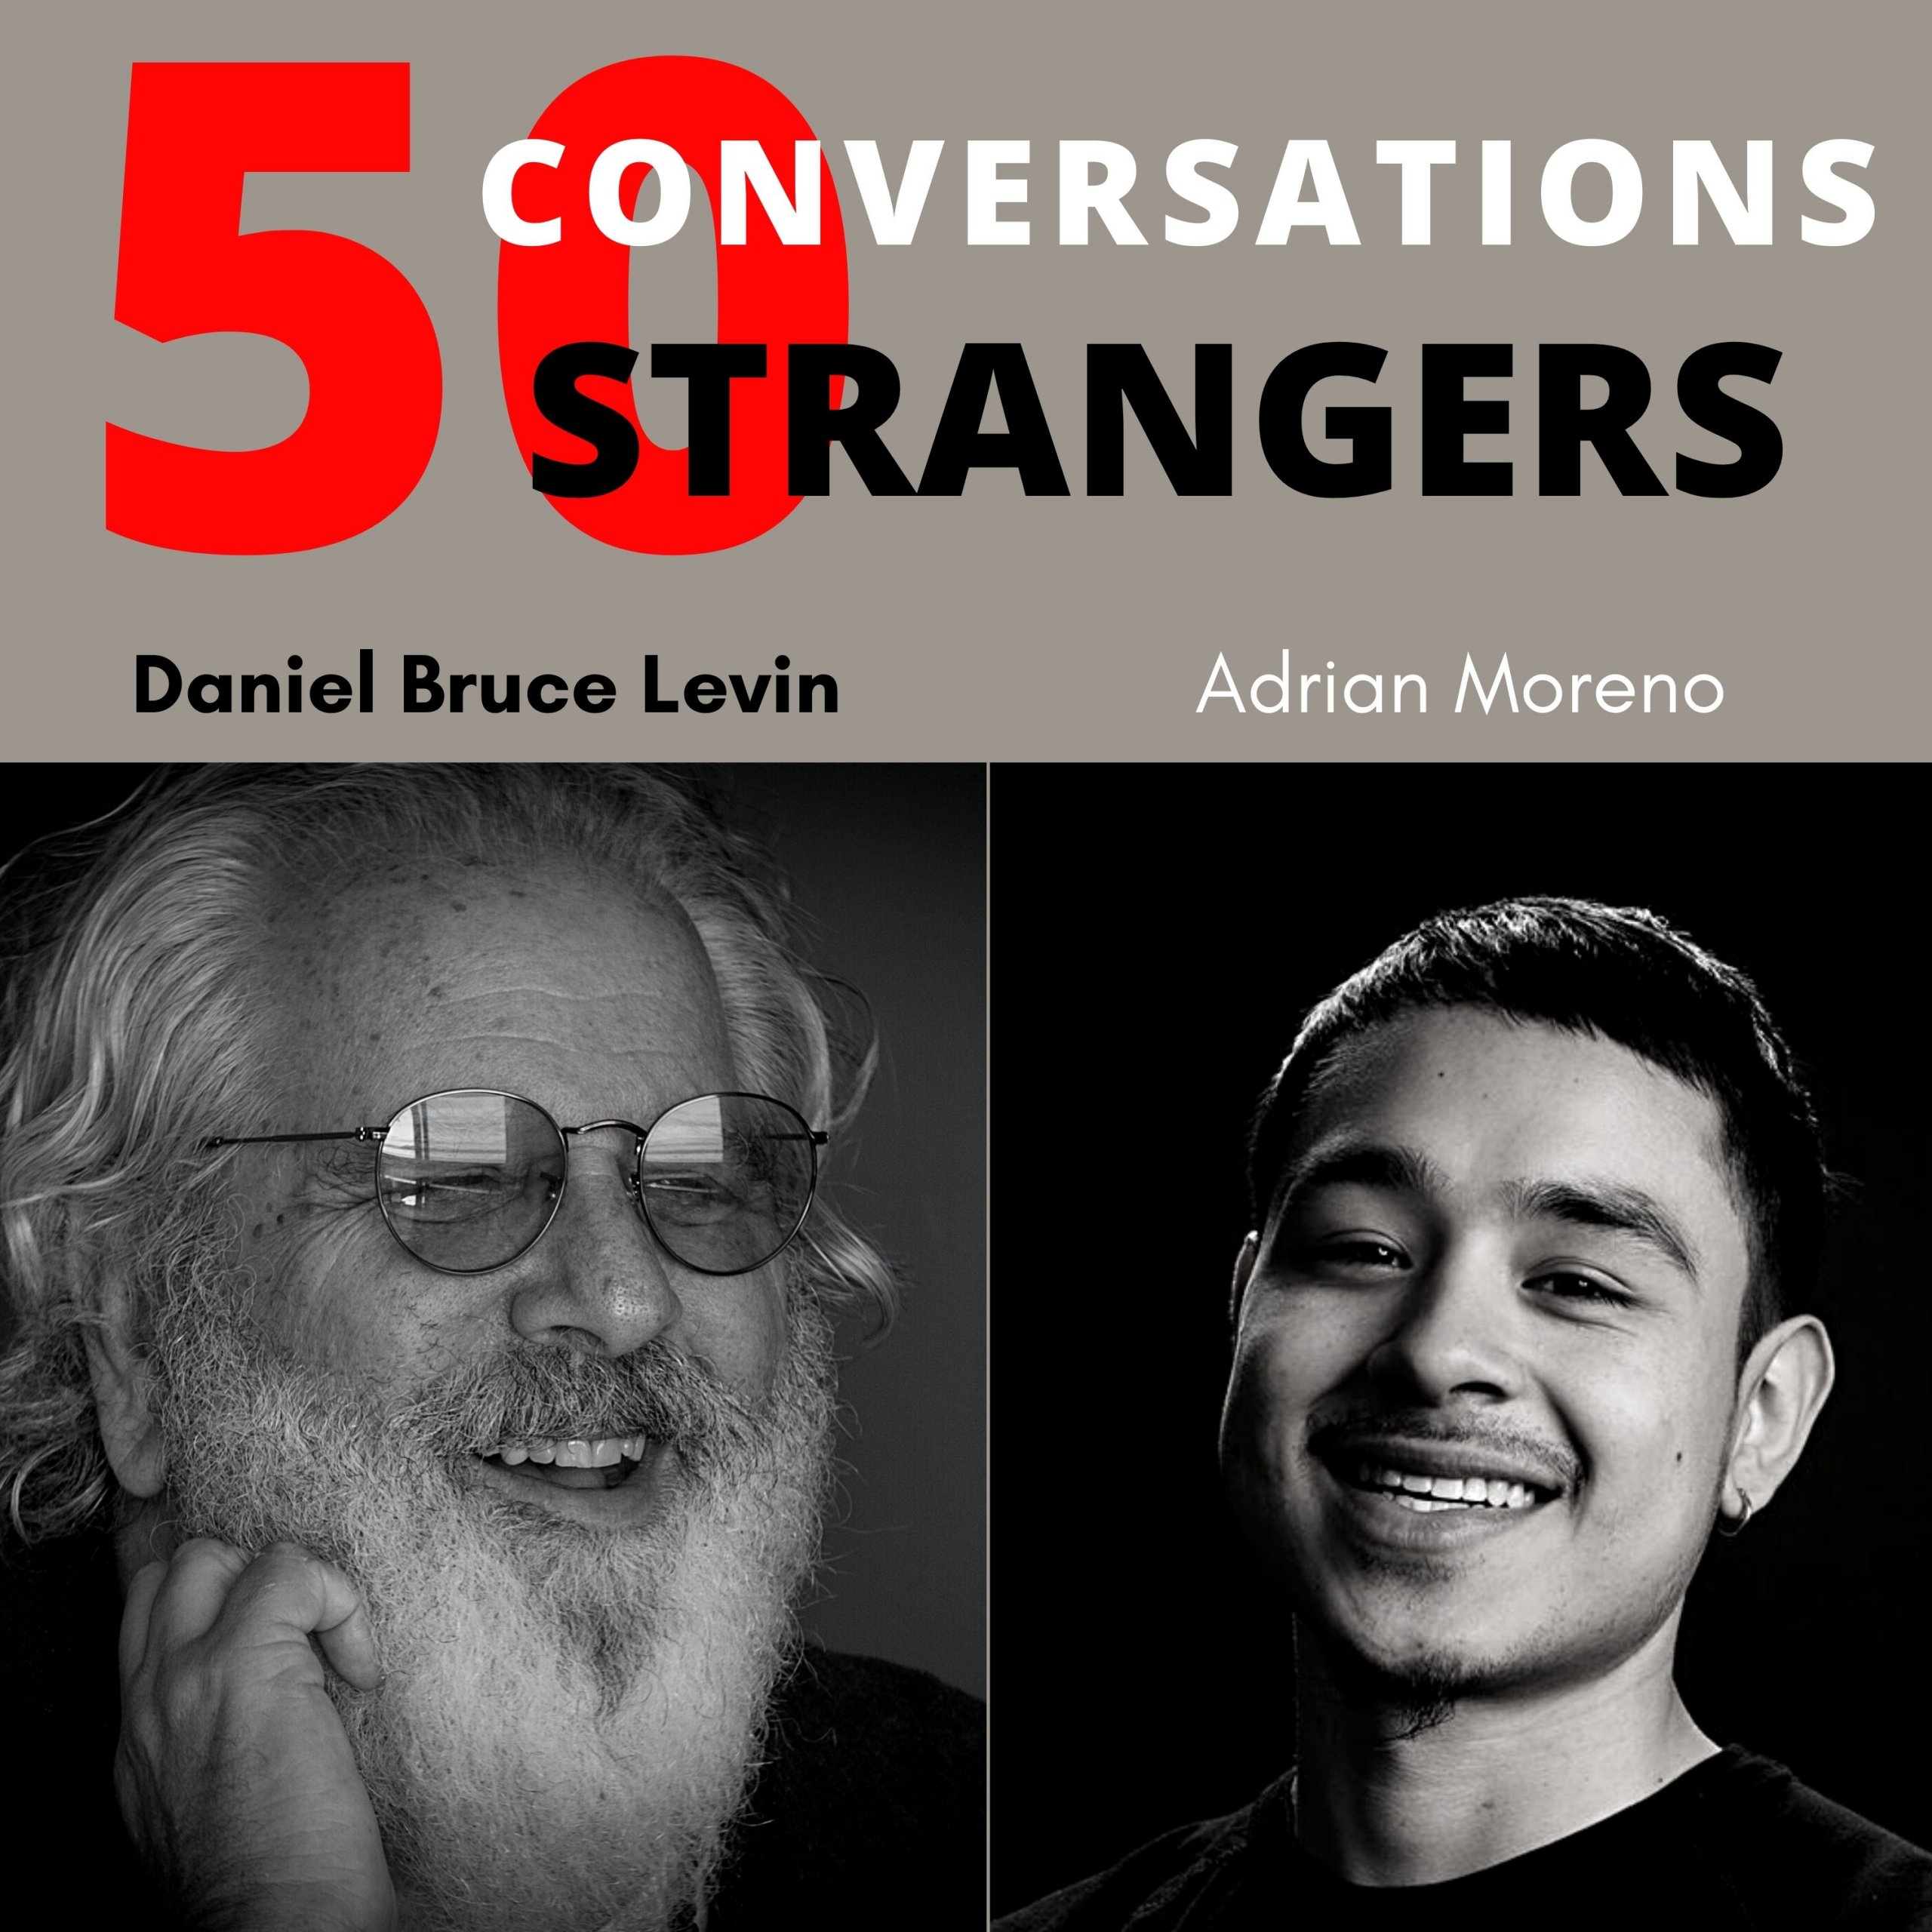 50 Conversations with 50 Strangers with Adrian Moreno